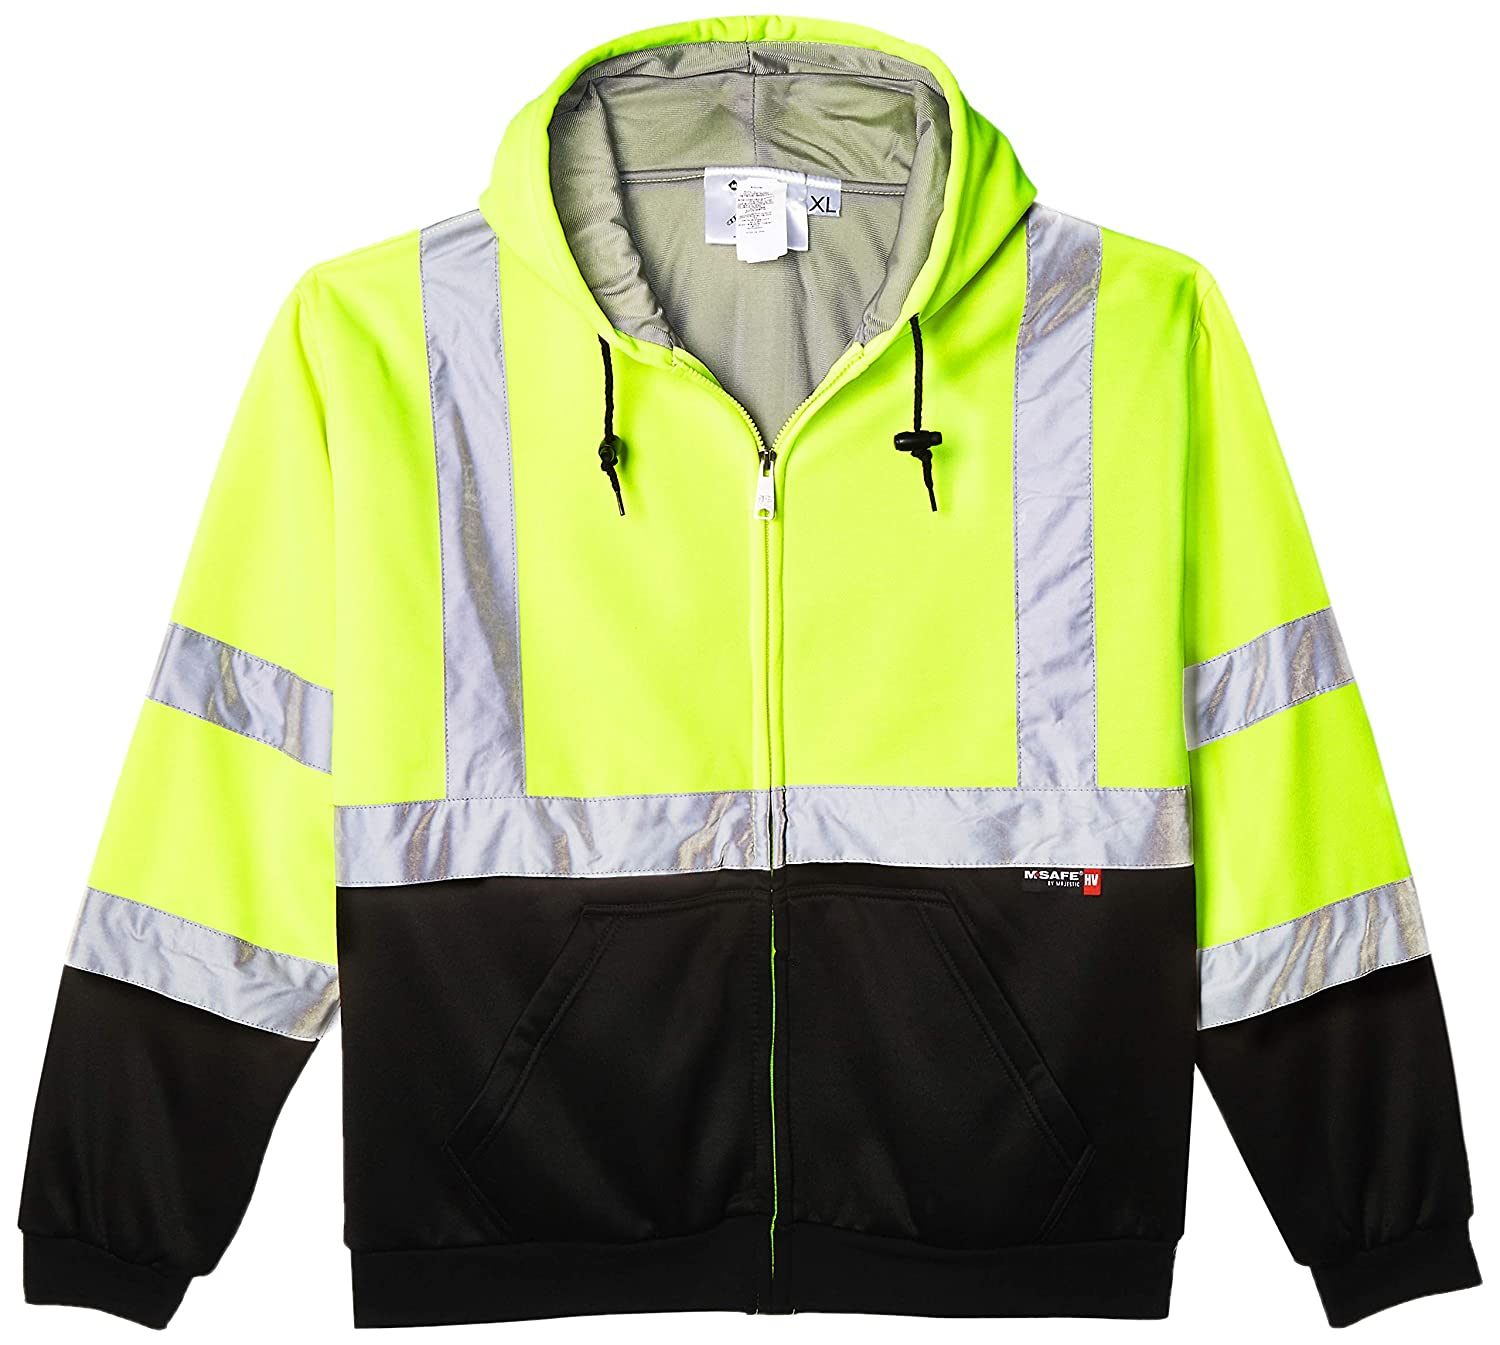 Yellow//Black Class 3 Zip-up Majestic Glove 75-5331//X1 High Visibility Weight Hoodie with Teflon X-Large